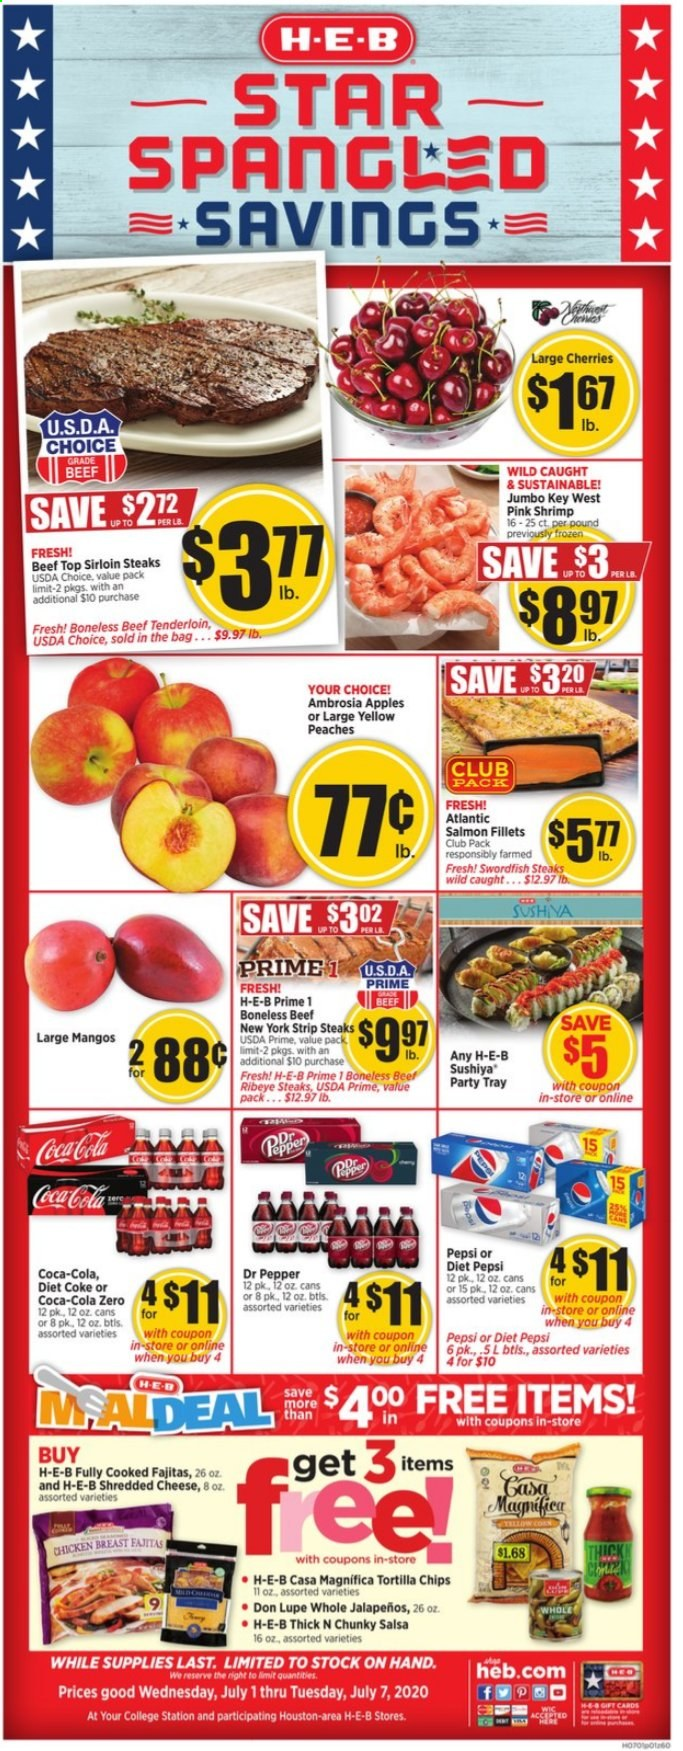 H-E-B Flyer - 07.01.2020 - 07.07.2020 - Sales products - apples, bag, beef meat, coca-cola, mango, salmon, shredded cheese, shrimp, swordfish, tortilla chips, tray, cherries, chicken, chicken breast, peaches, pepsi, chips, coca-cola light, tenderloin, cheese, beef tenderloin, pepper, salsa, dr. pepper, diet pepsi, diet coke. Page 1.